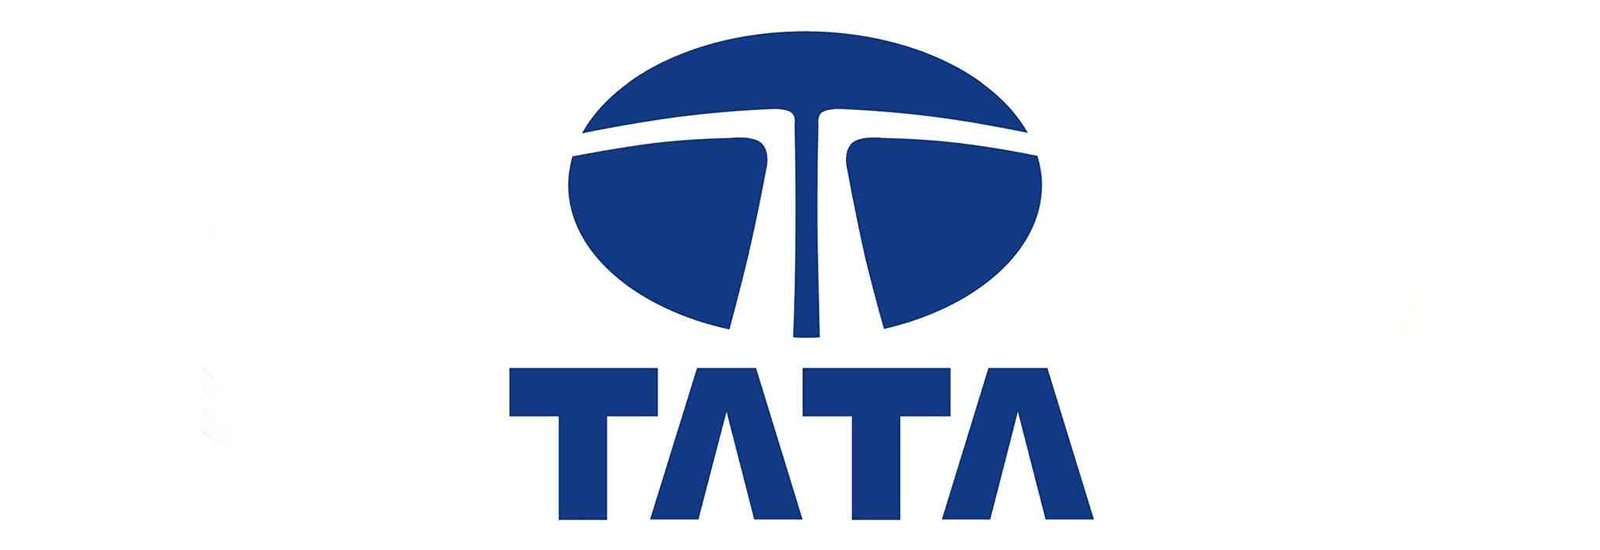 tata motors innovation strategy India's tata motors is overhauling its supply chain, product portfolio and organizational structure as part of a turnaround strategy.